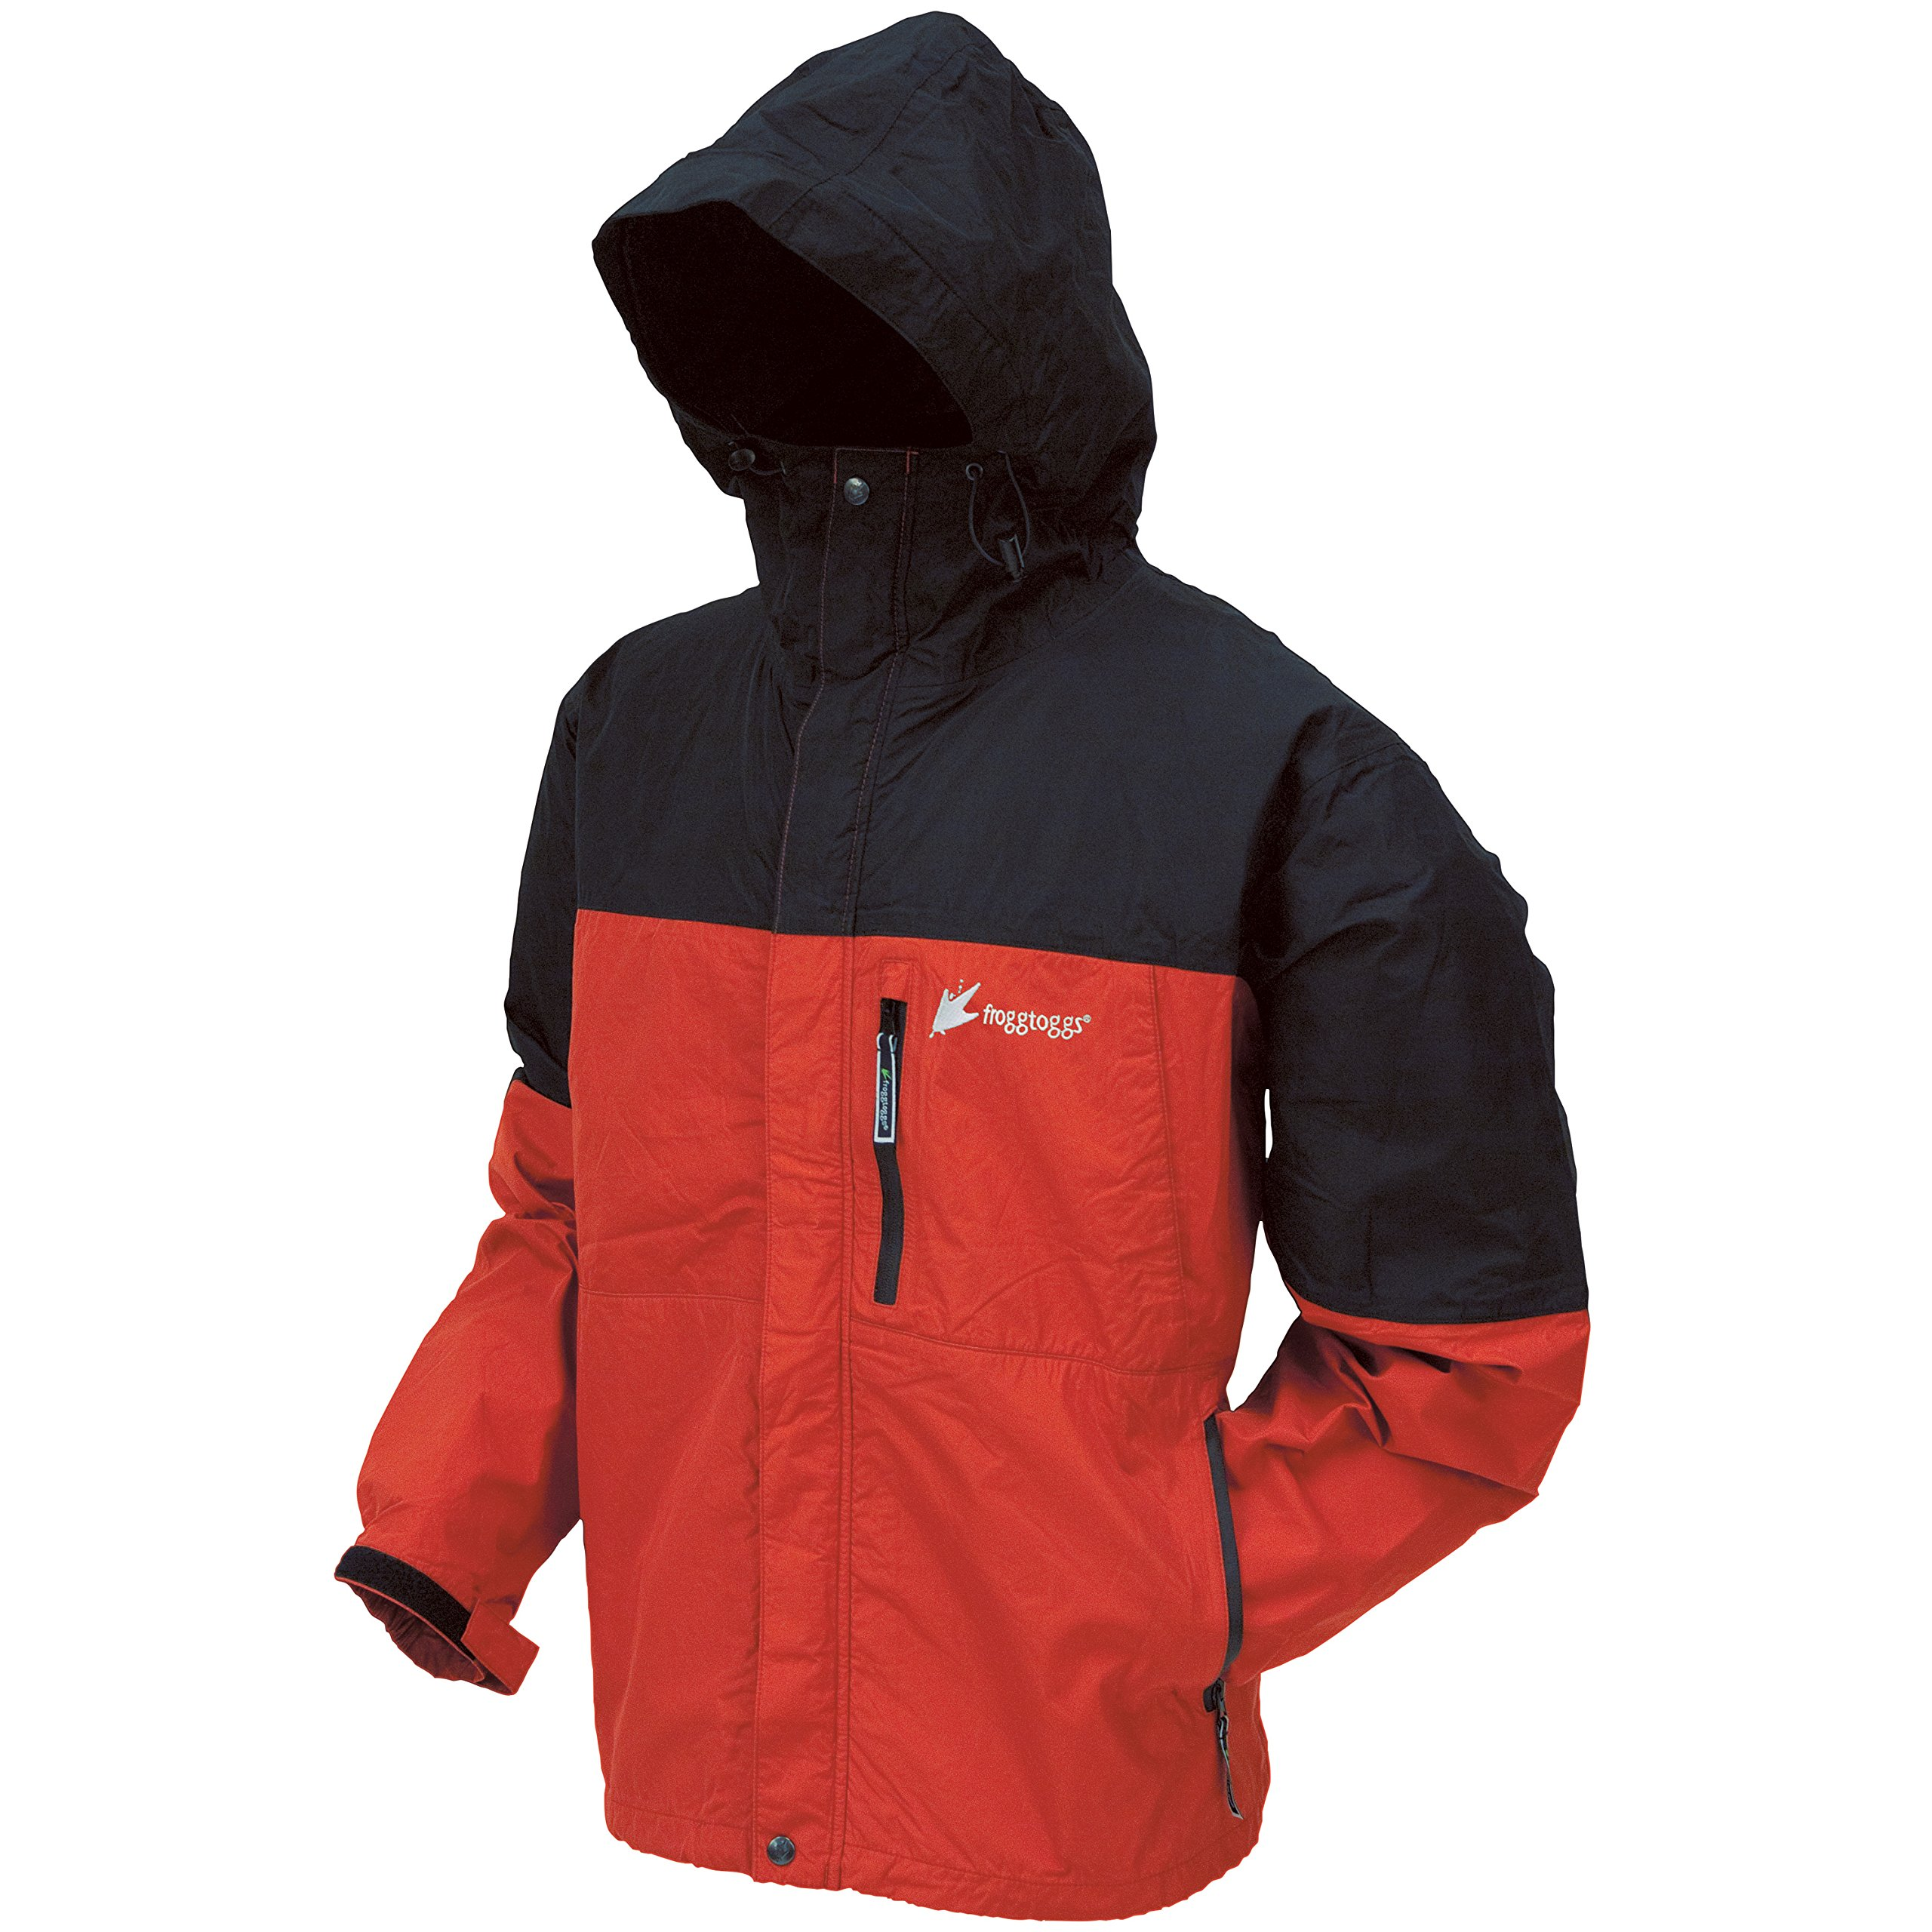 Frogg Toggs Toadz Rage Jacket, Red/Black, XX-Large